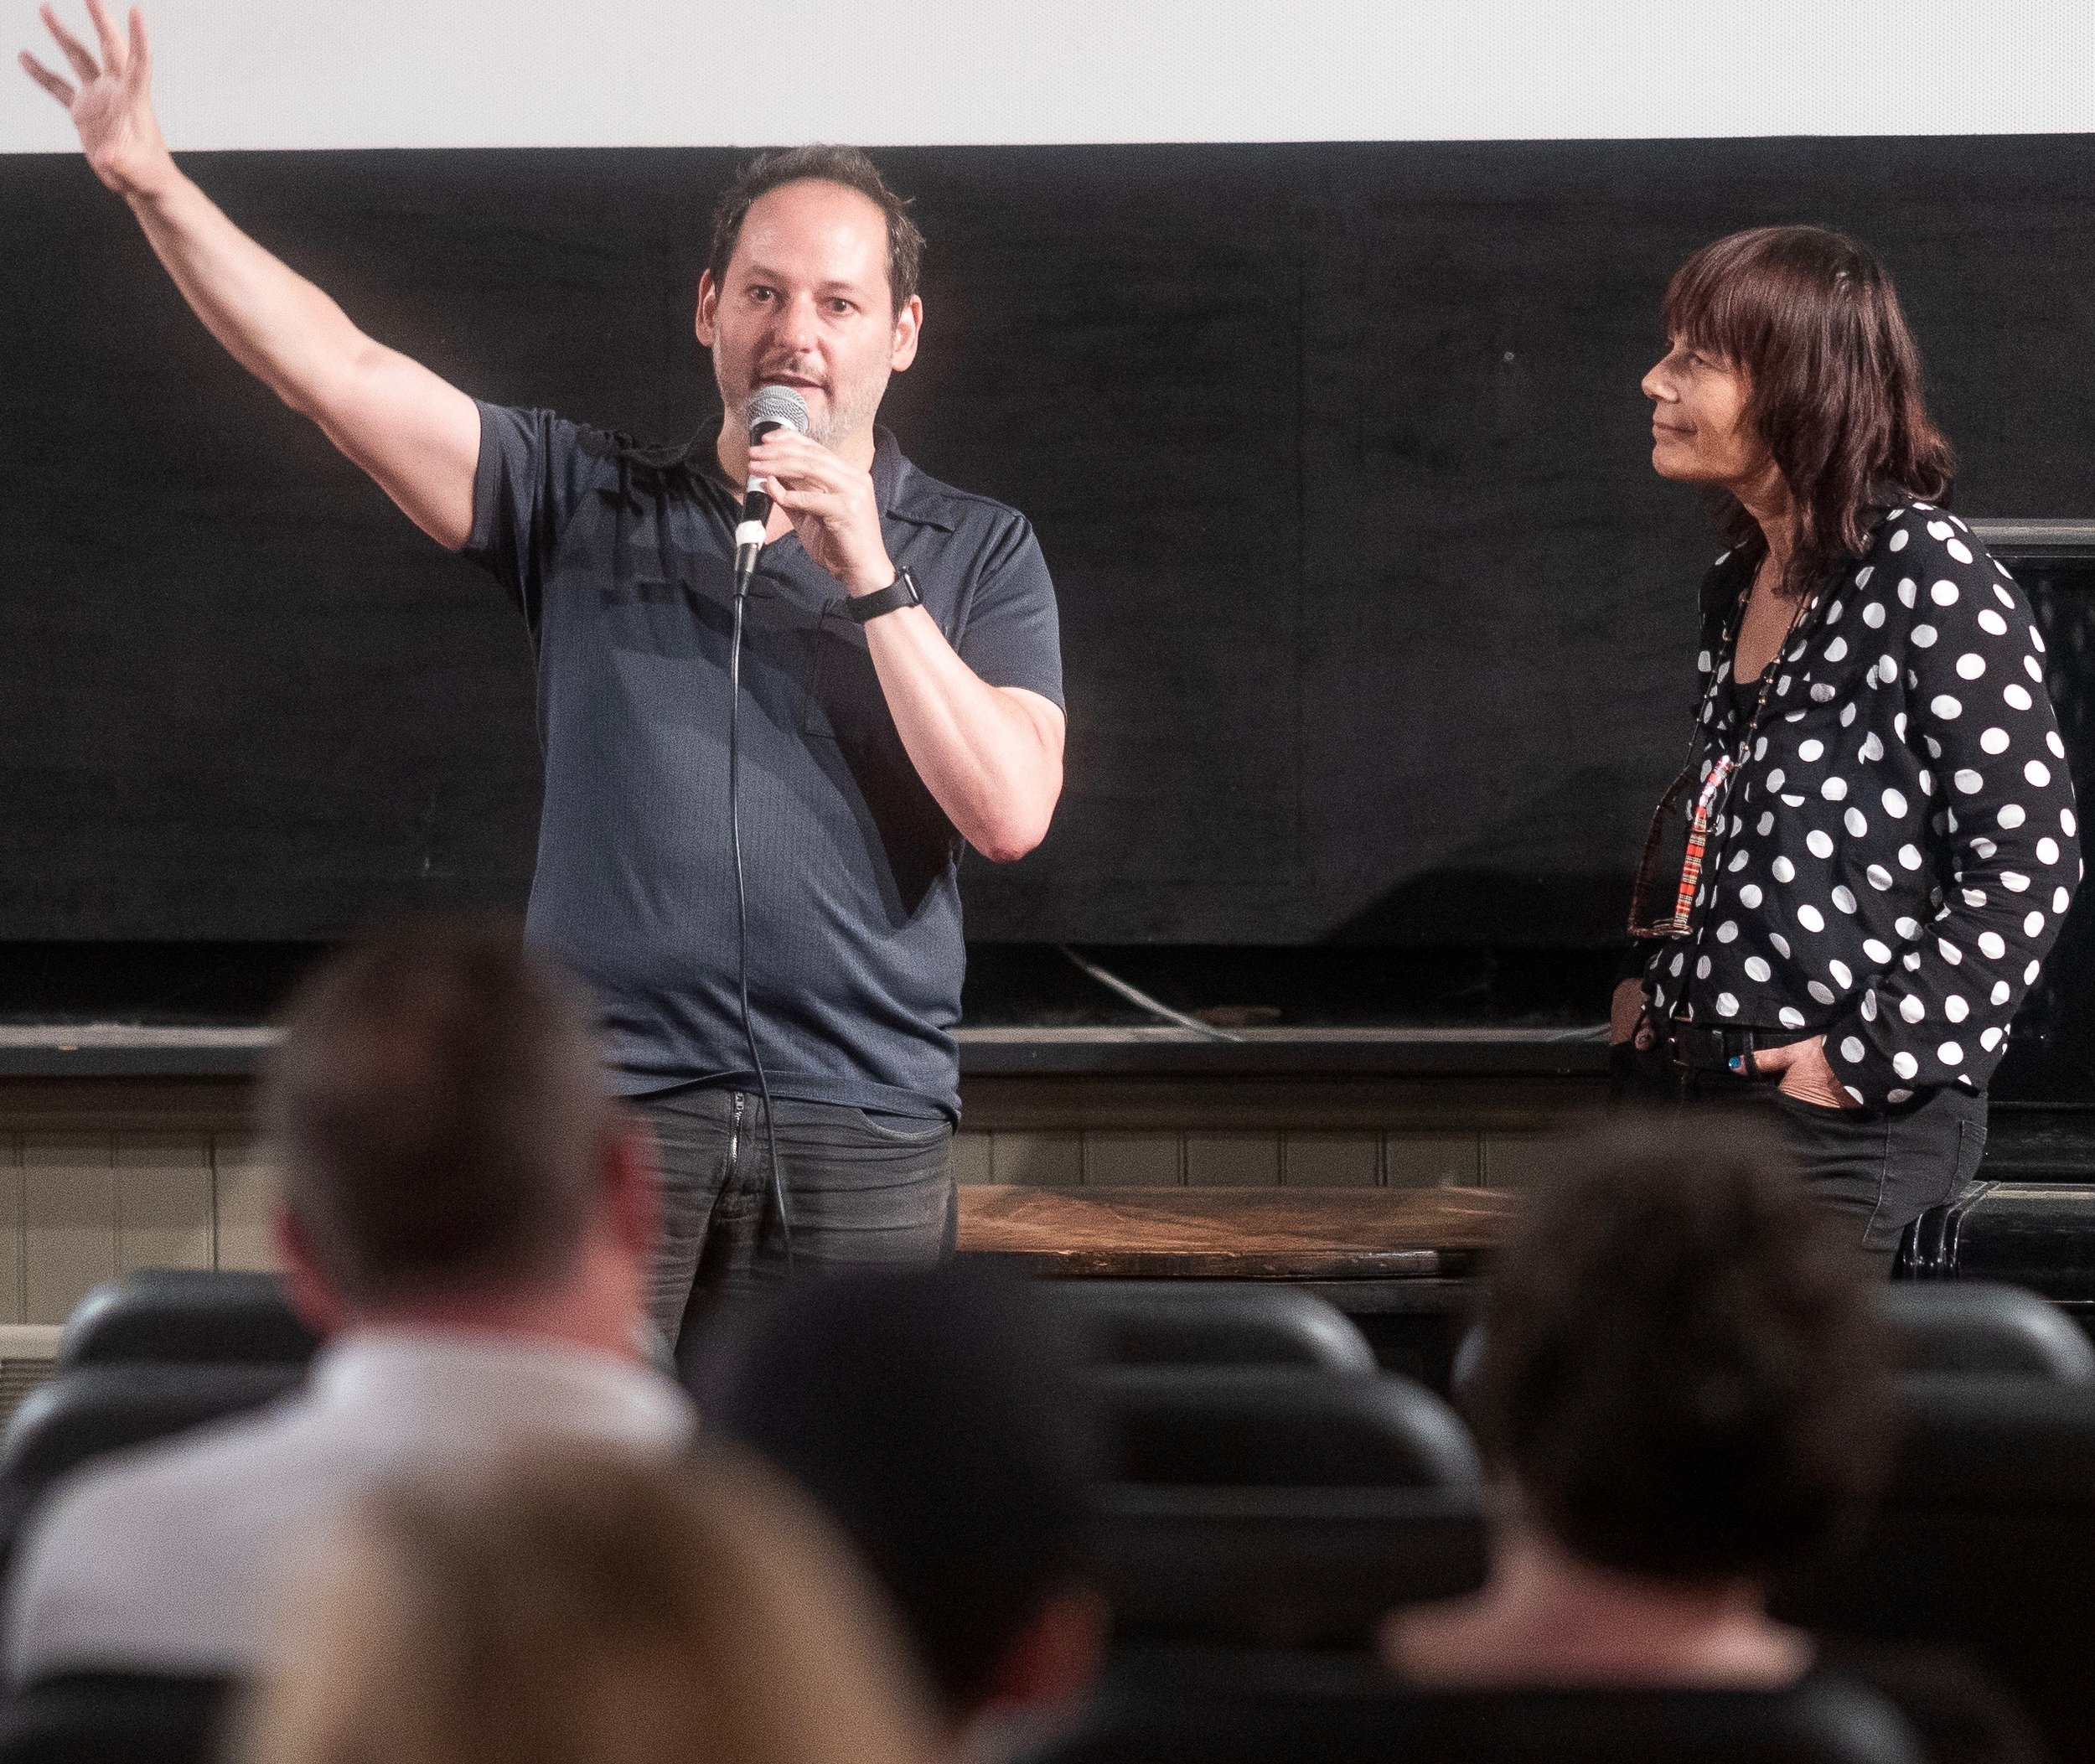 Director Tom Donahue answers audience questions with Woodstock Film Festival Co-founder and Executive Director Meira Blaustein.